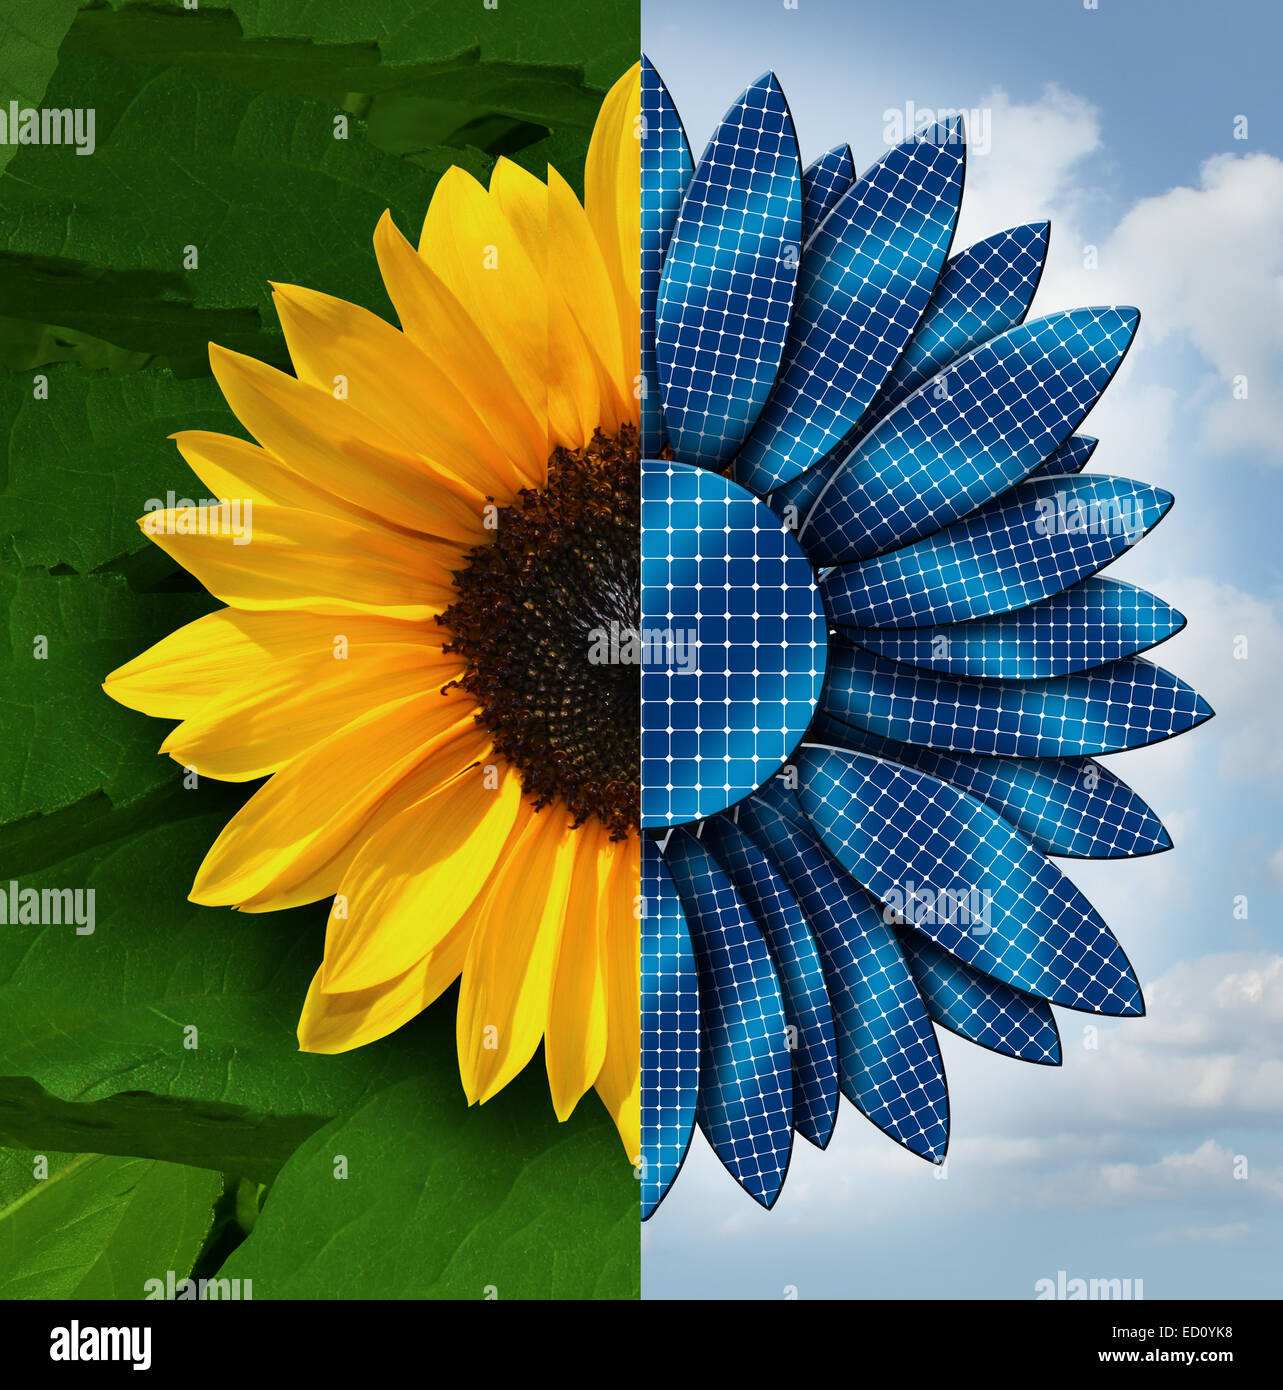 Sun energy concept as a sunflower divided in two with the opposite side as solar panel petals as a symbol and metaphor - Stock Image